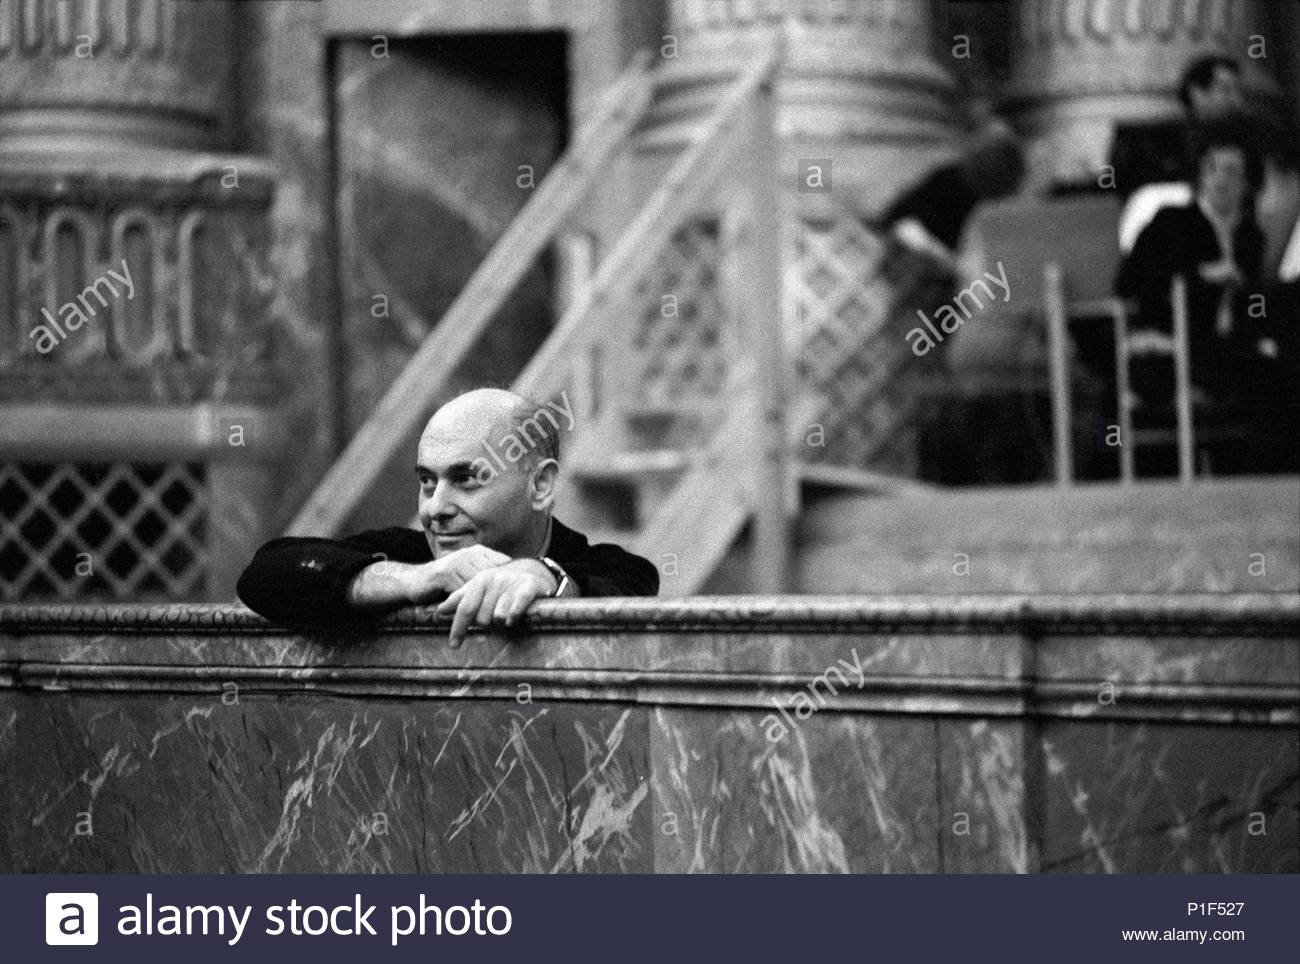 The Paris Opera in the Palais Garnier opened in 1973 under its new director Rolf Liebermann. George Solti who conducted the Marriage of Figaro, watching a rehearsal. Opera de Versailles,1973. Location: Operahouse Palais Garnier, Paris, France. - Stock Image